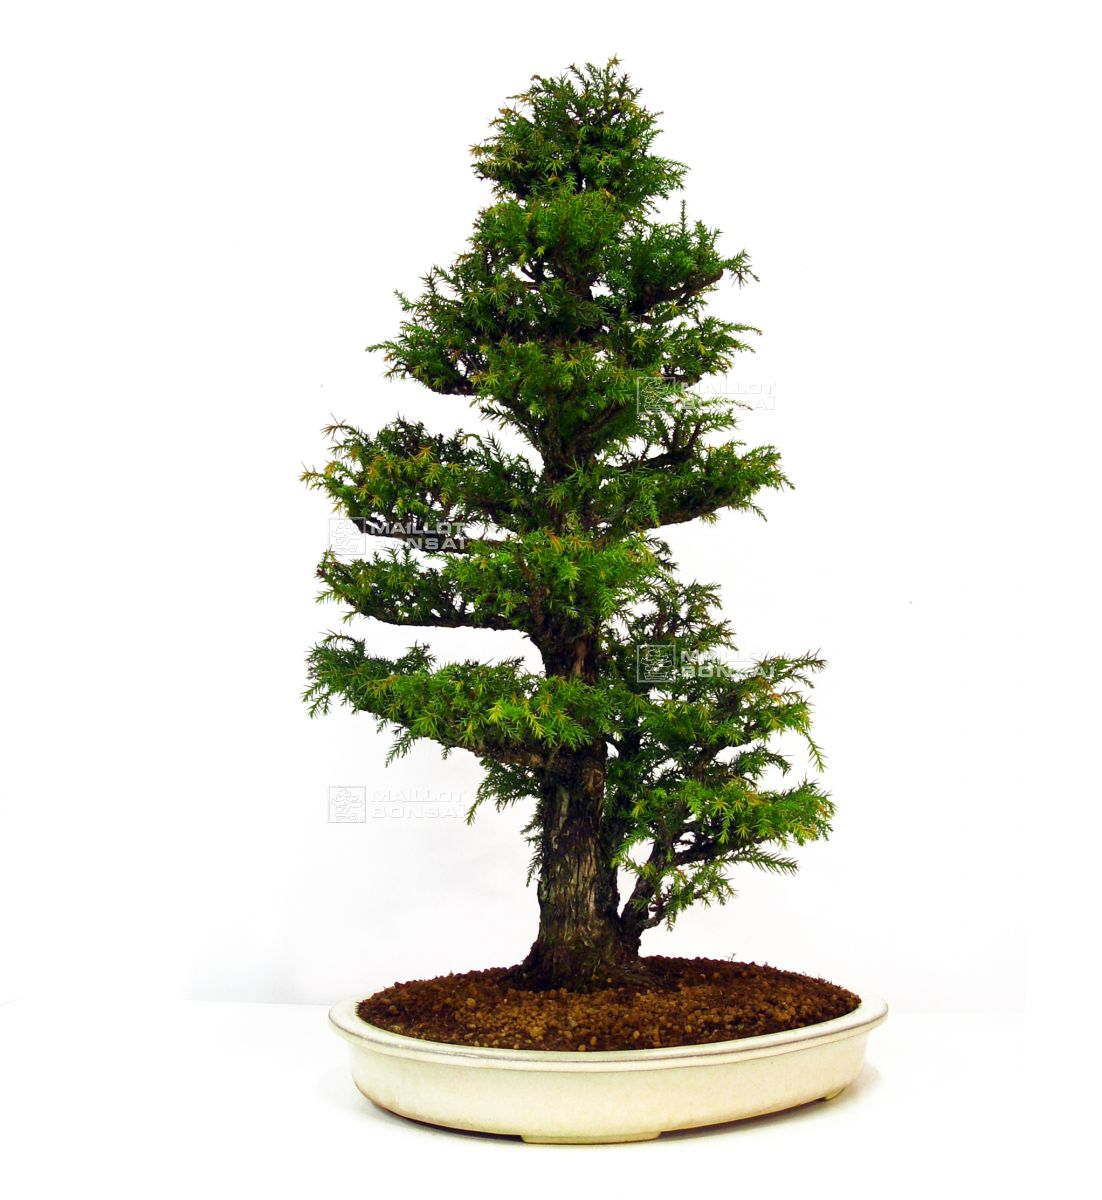 bonsai masterpieces cryptomeria japonica bonsai ref 14020147 from rh maillot bonsai com